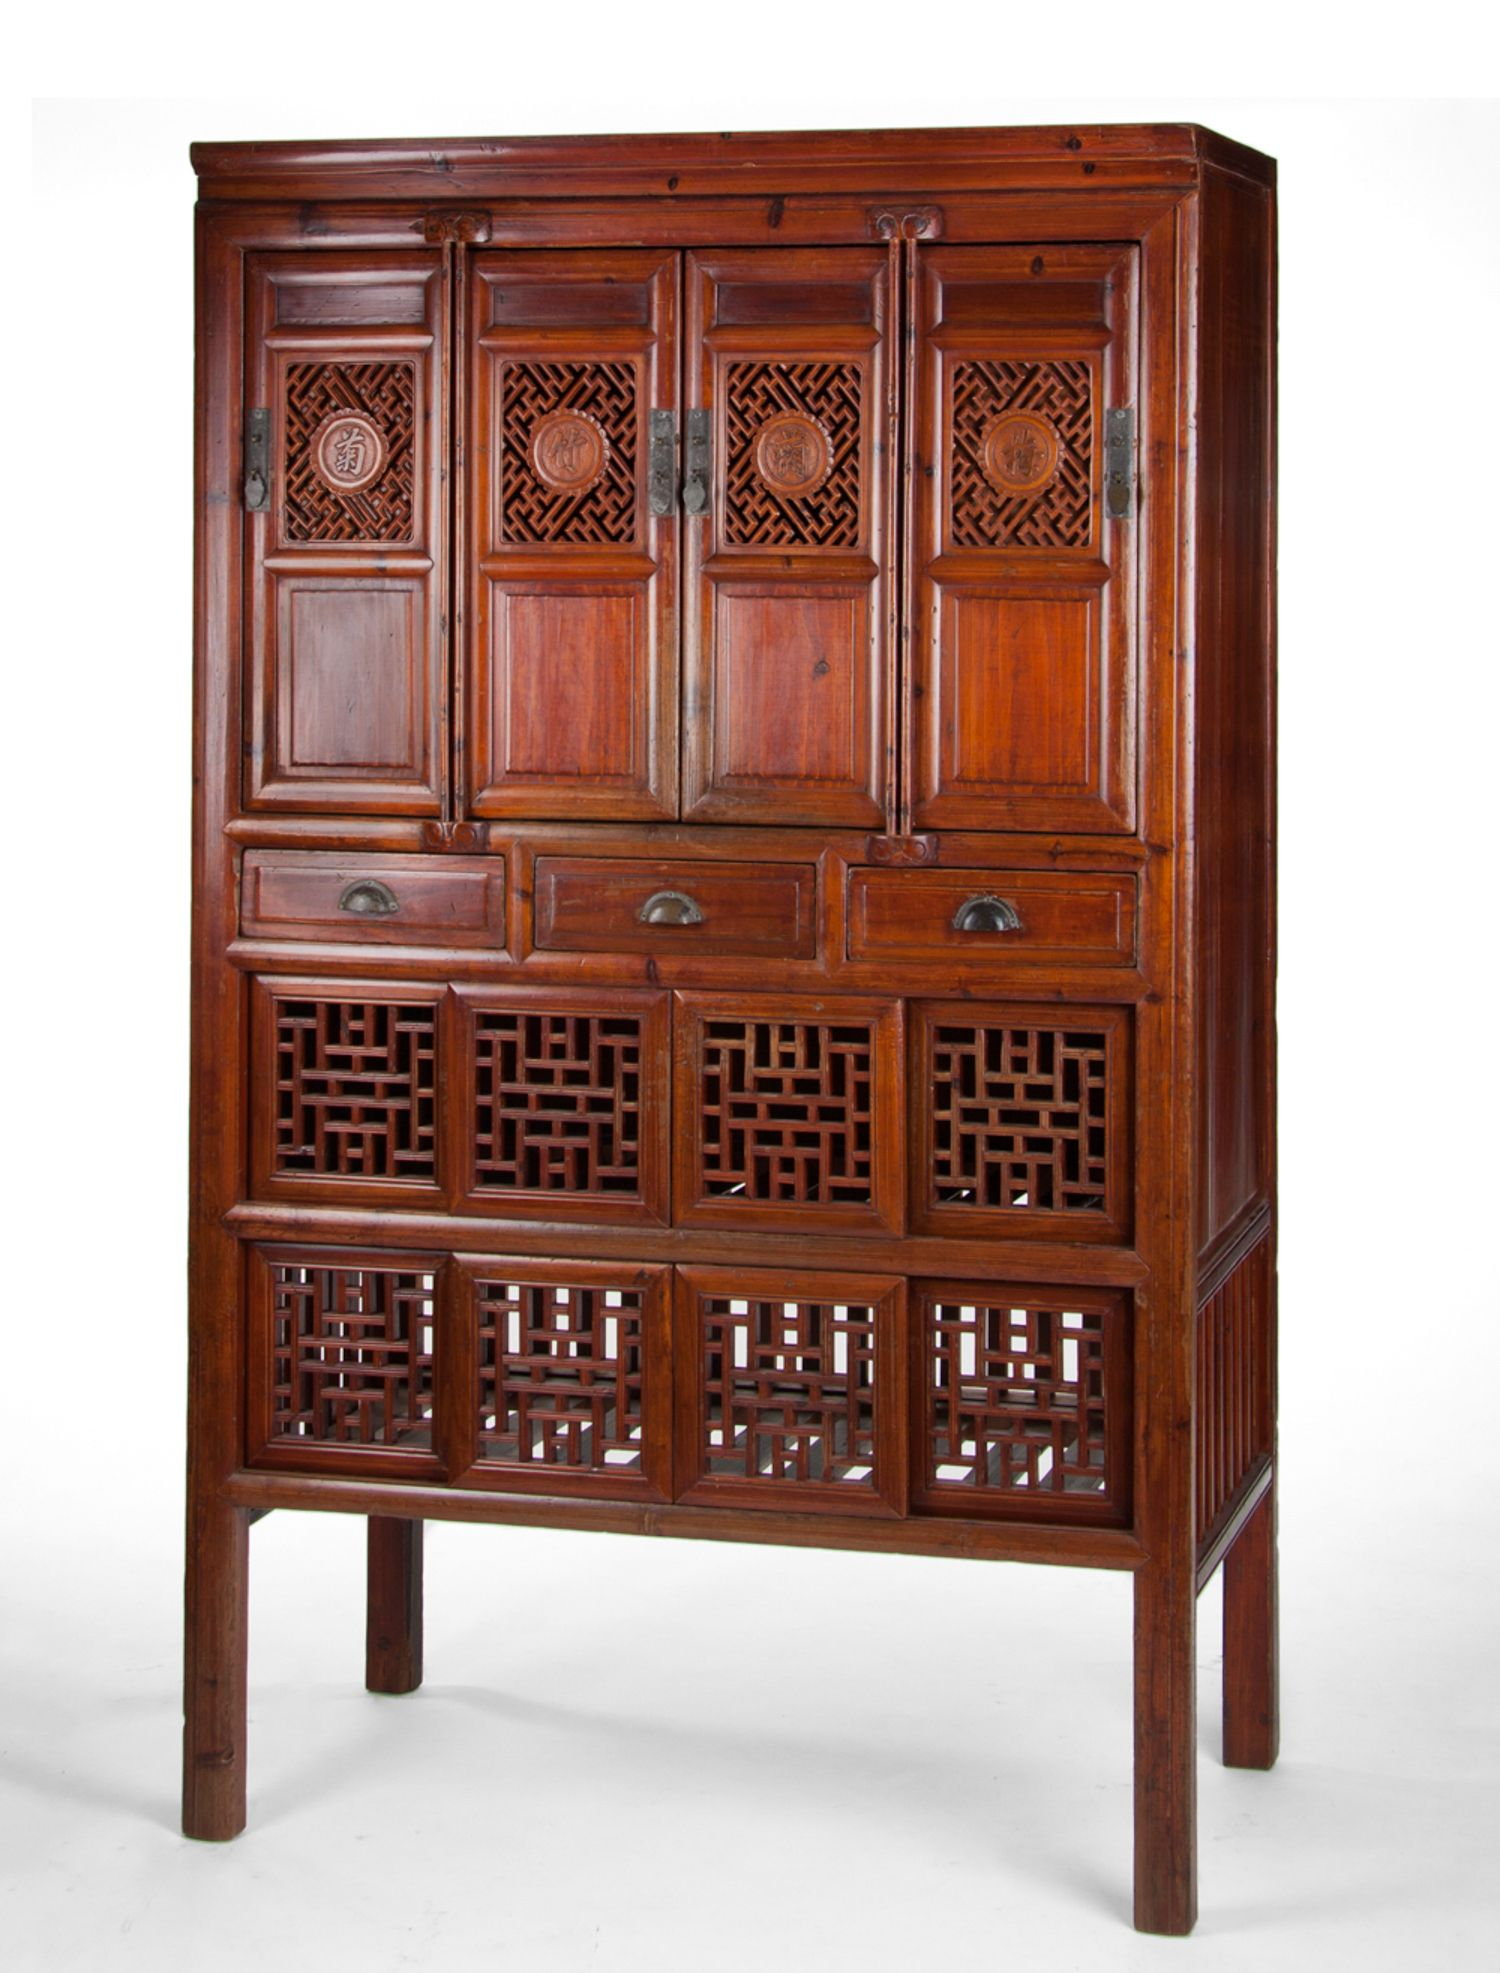 Early 20th Century Kitchen Cabinet Kitchen Cabinets Were An Important Part Of The Trad Interior Decor Stores Antique Chinese Cabinet Antique Chinese Furniture